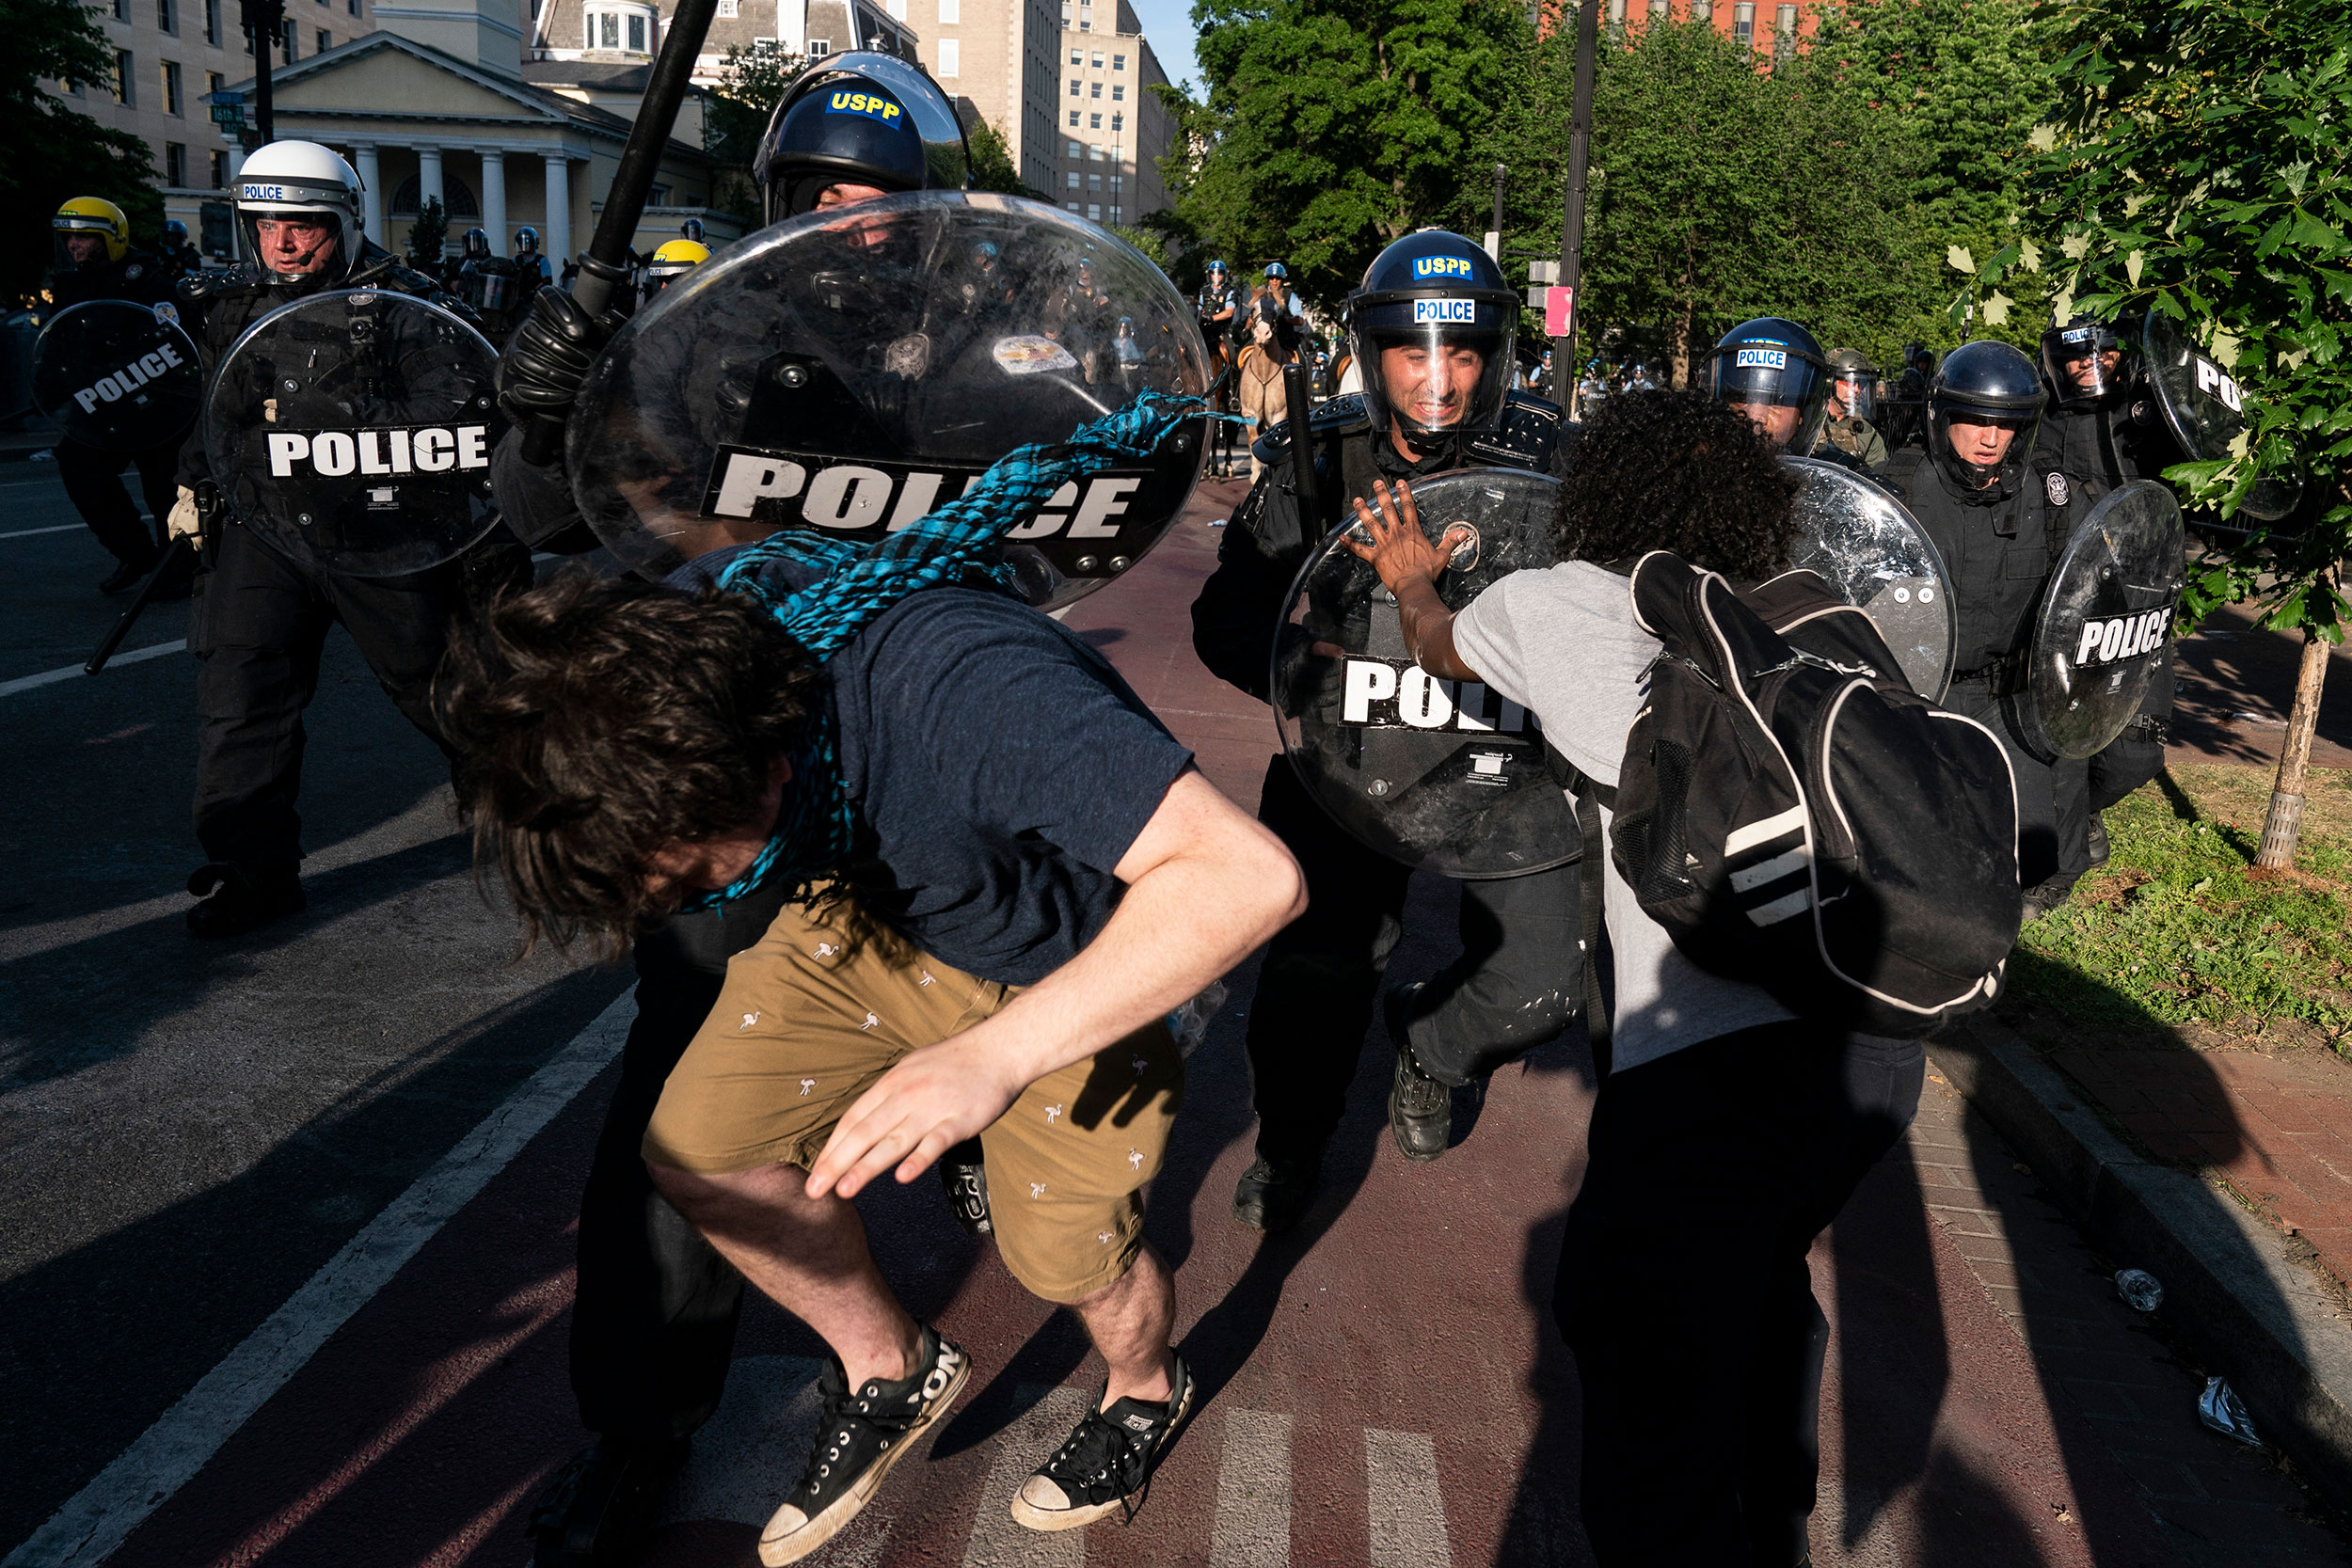 Police clash with protesters during a demonstration on June 1 in Washington.